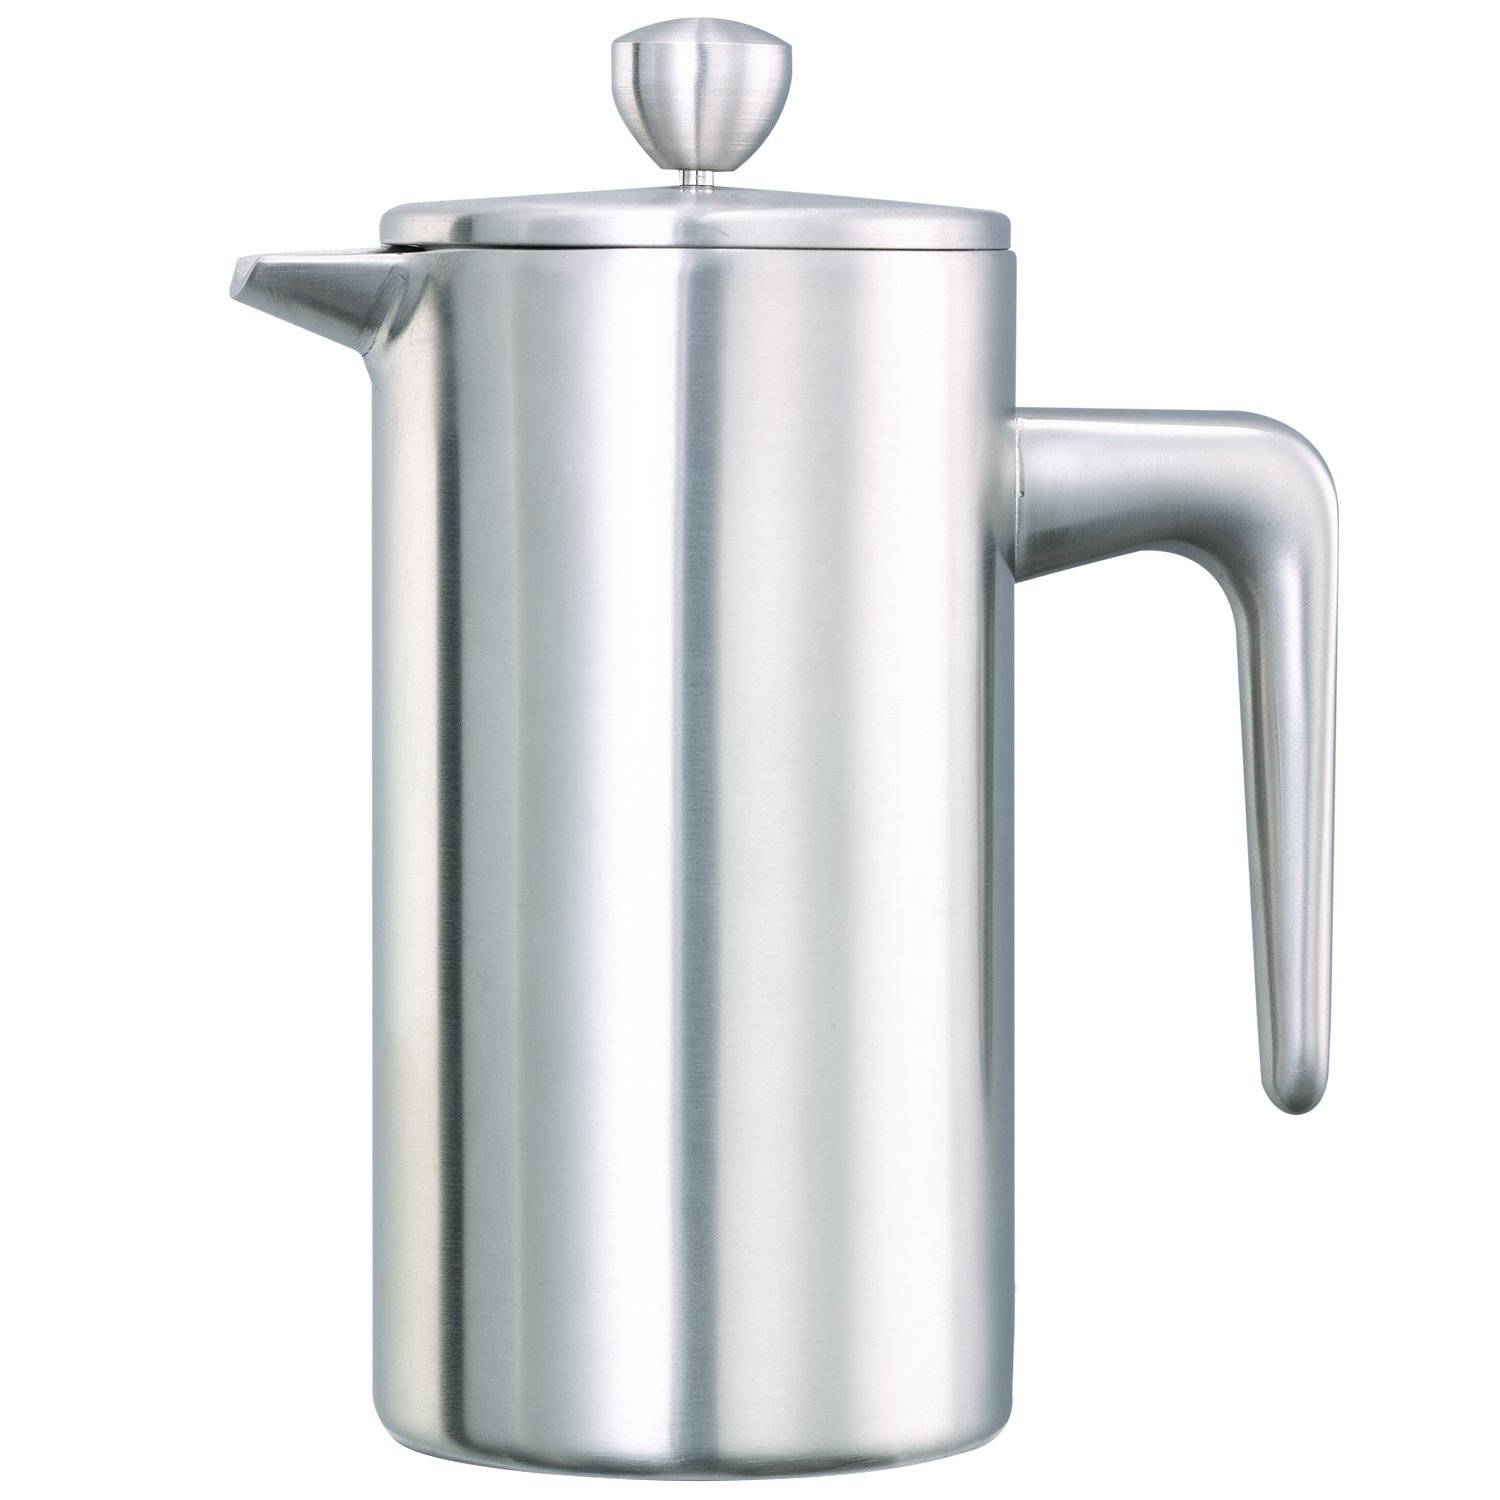 Service Ideas PDWSA350BS Double Wall Coffee Press, Stainless Steel, Brushed, 12 oz.